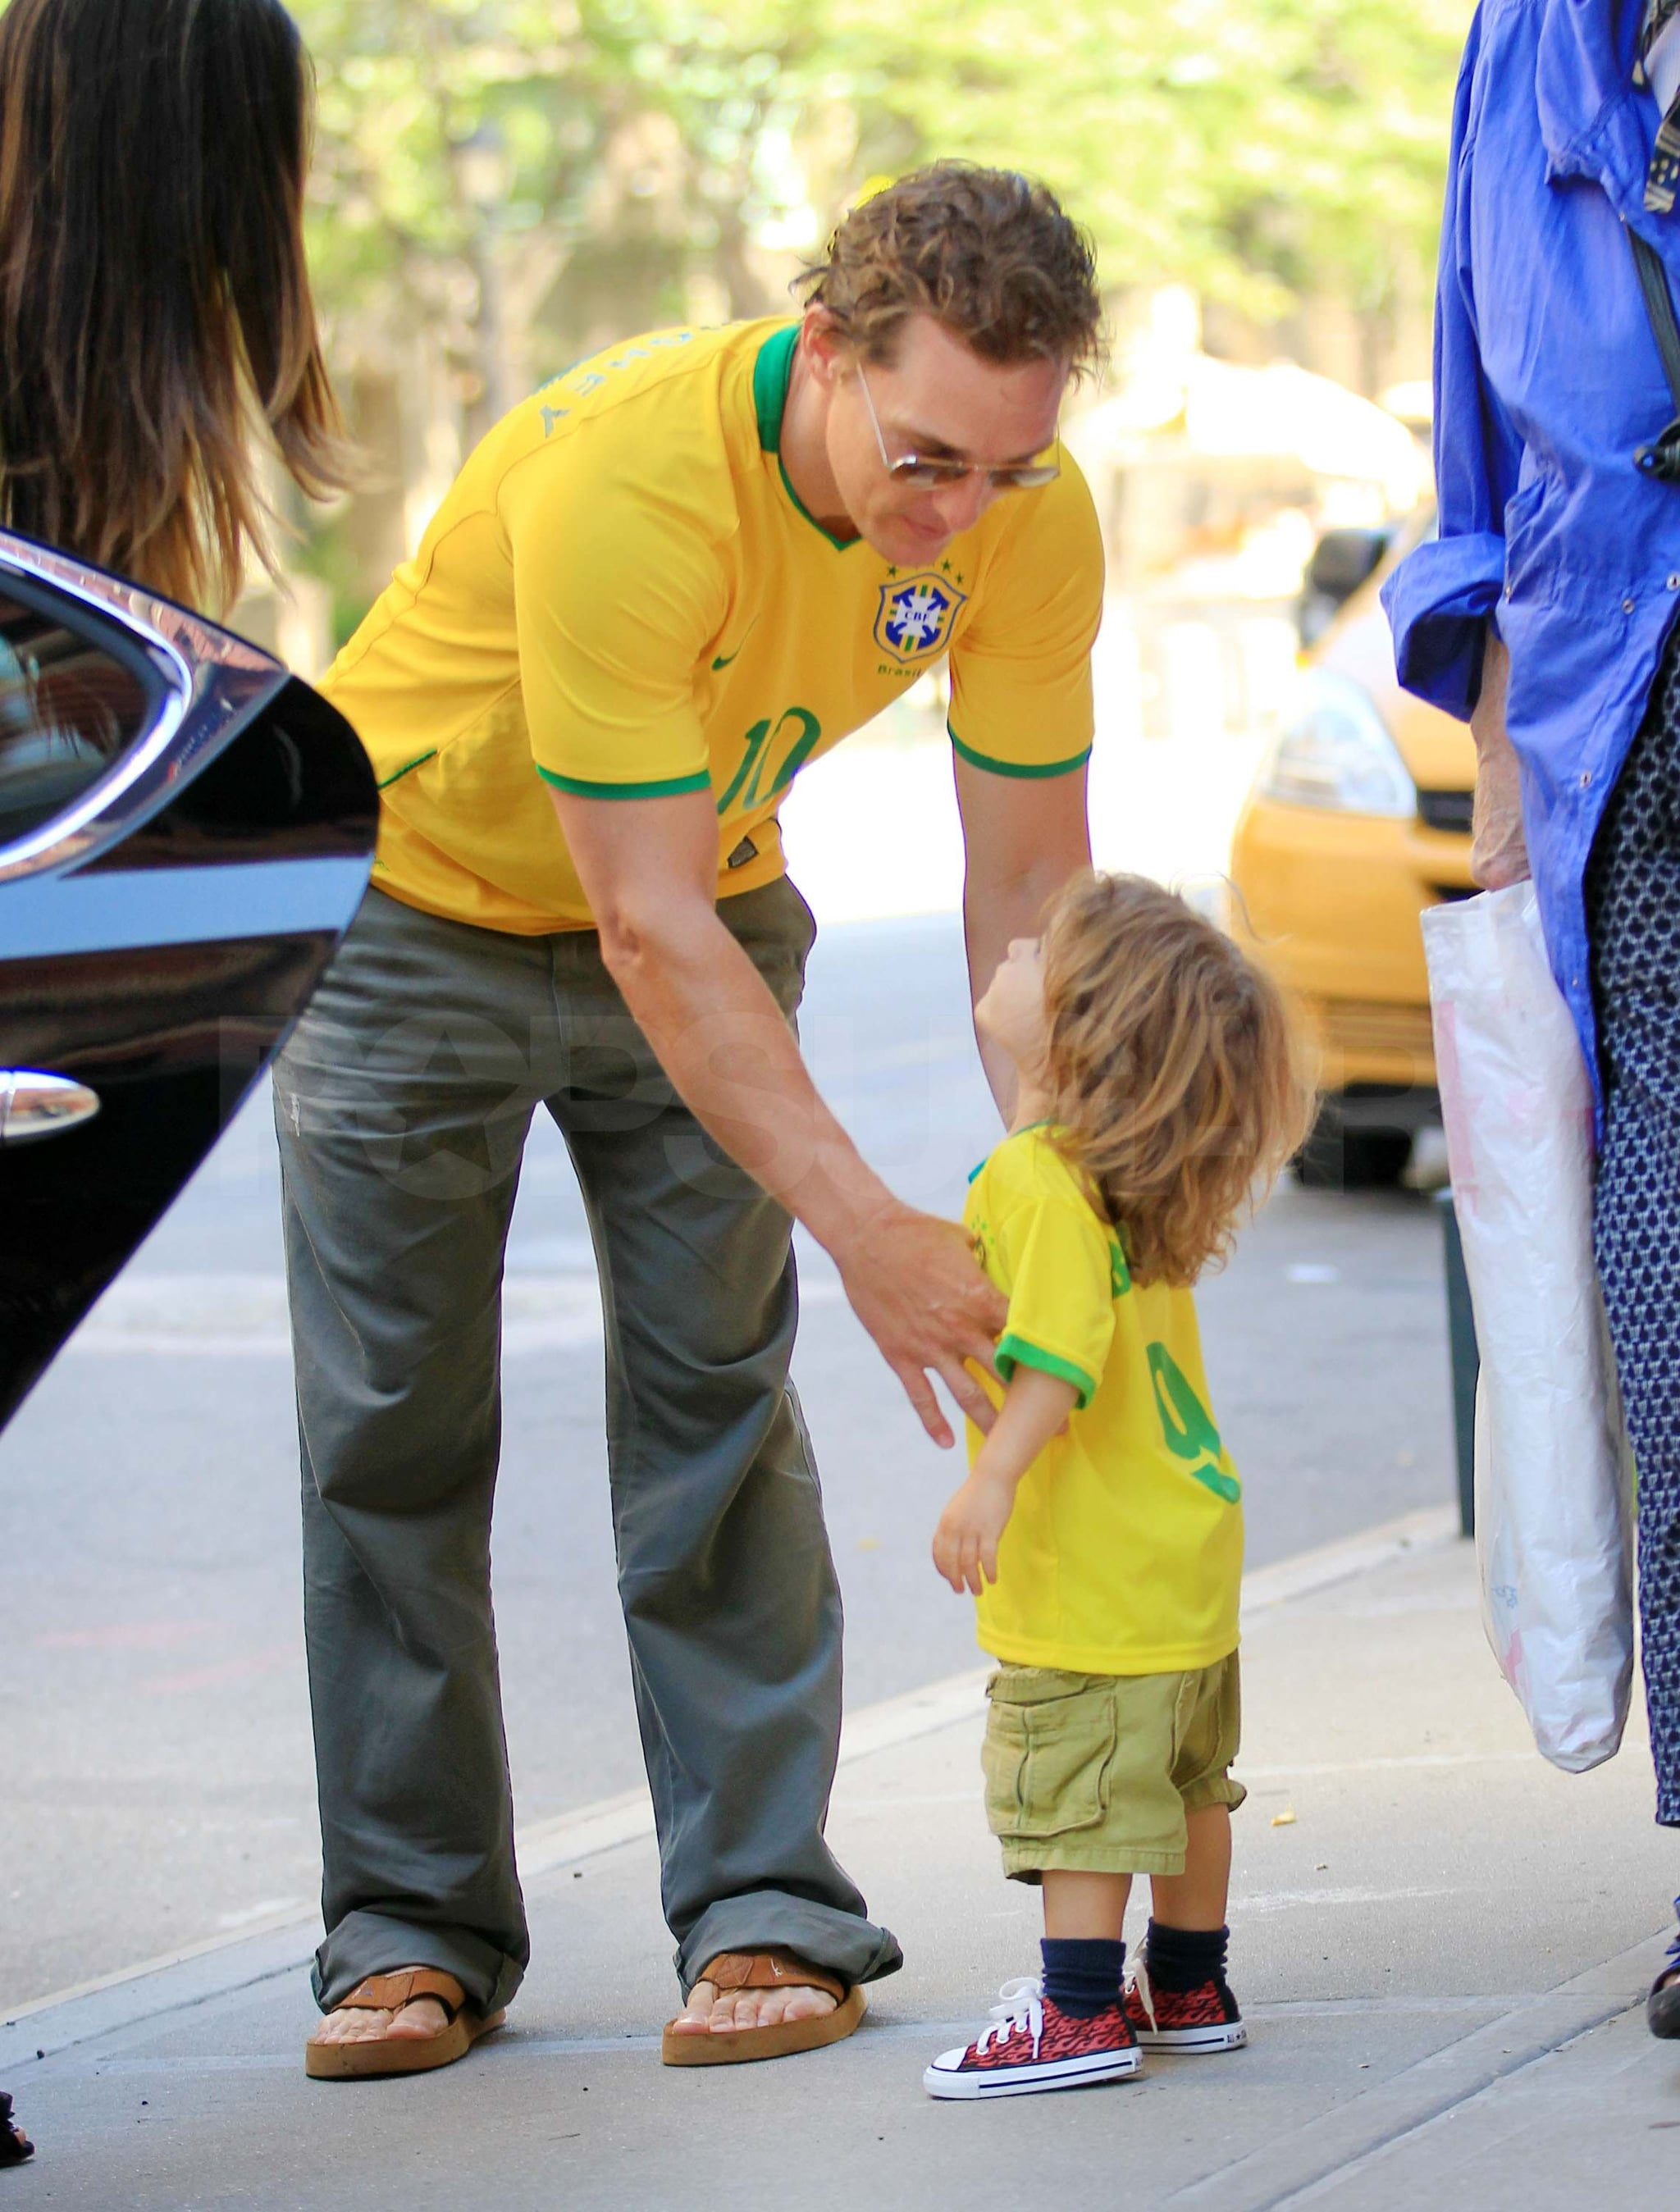 Pictures of Matthew McConaughey and Levi